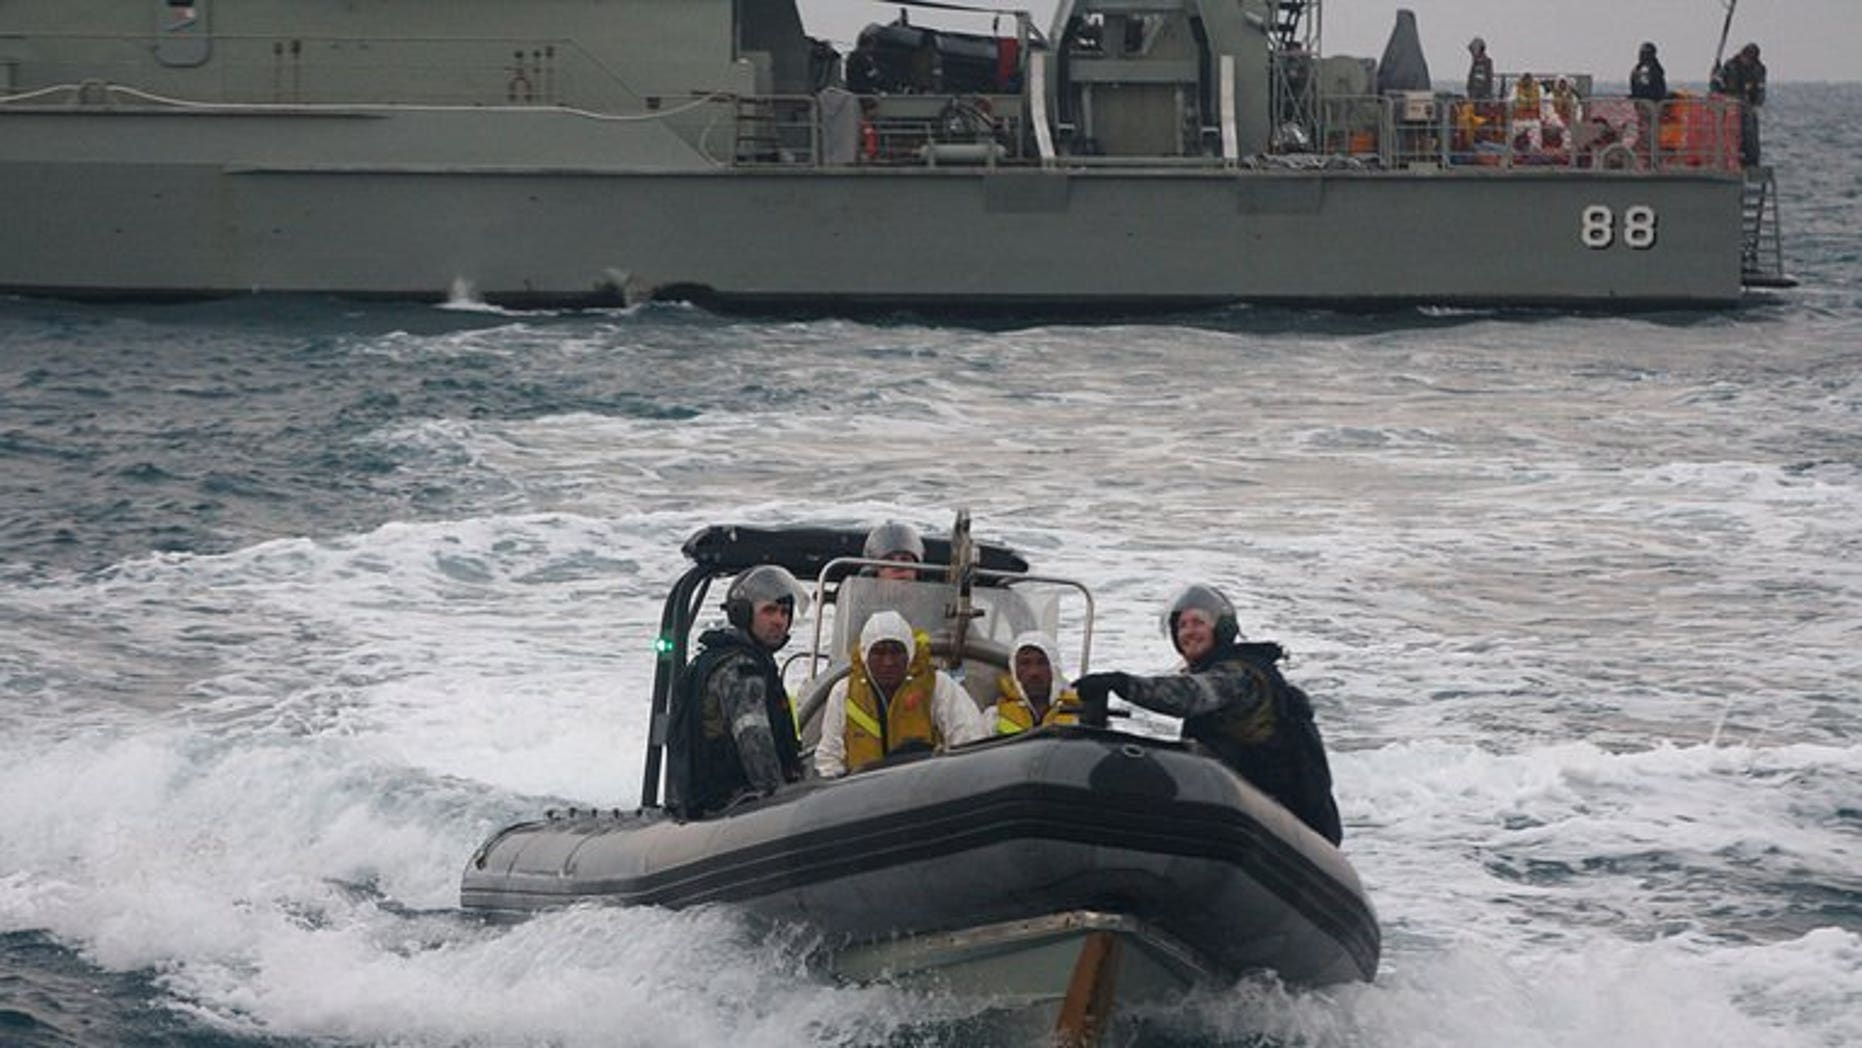 Australian navy personnel transfer asylum-seekers to a rescue boat near West Java on August 31, 2012. A rescue operation was underway Tuesday after an asylum-seeker boat started to sink off Christmas Island.